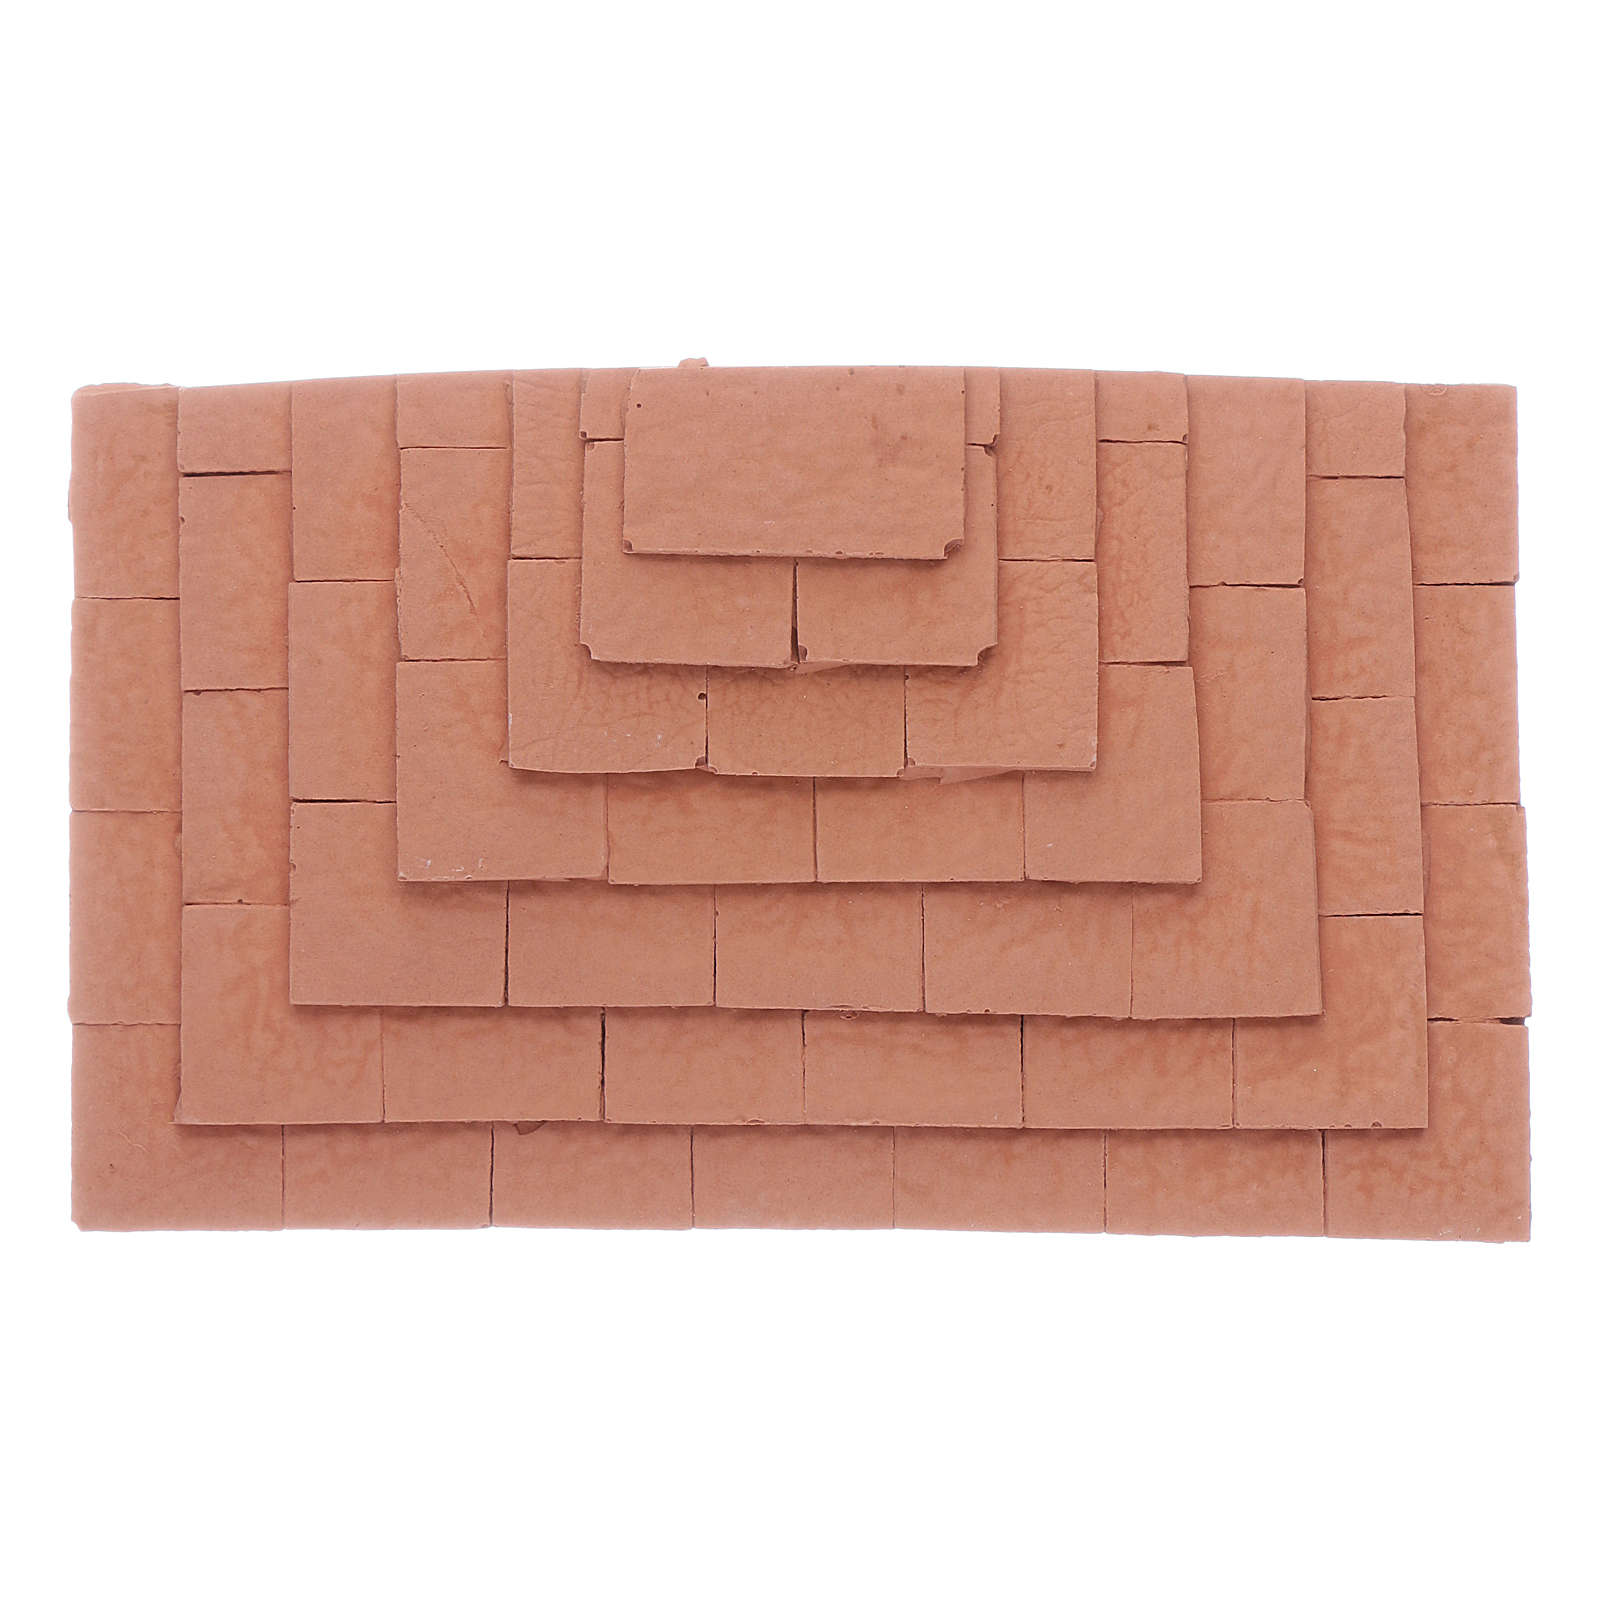 Stairway with three sides made in terracotta 1,5x10x5 cm 4